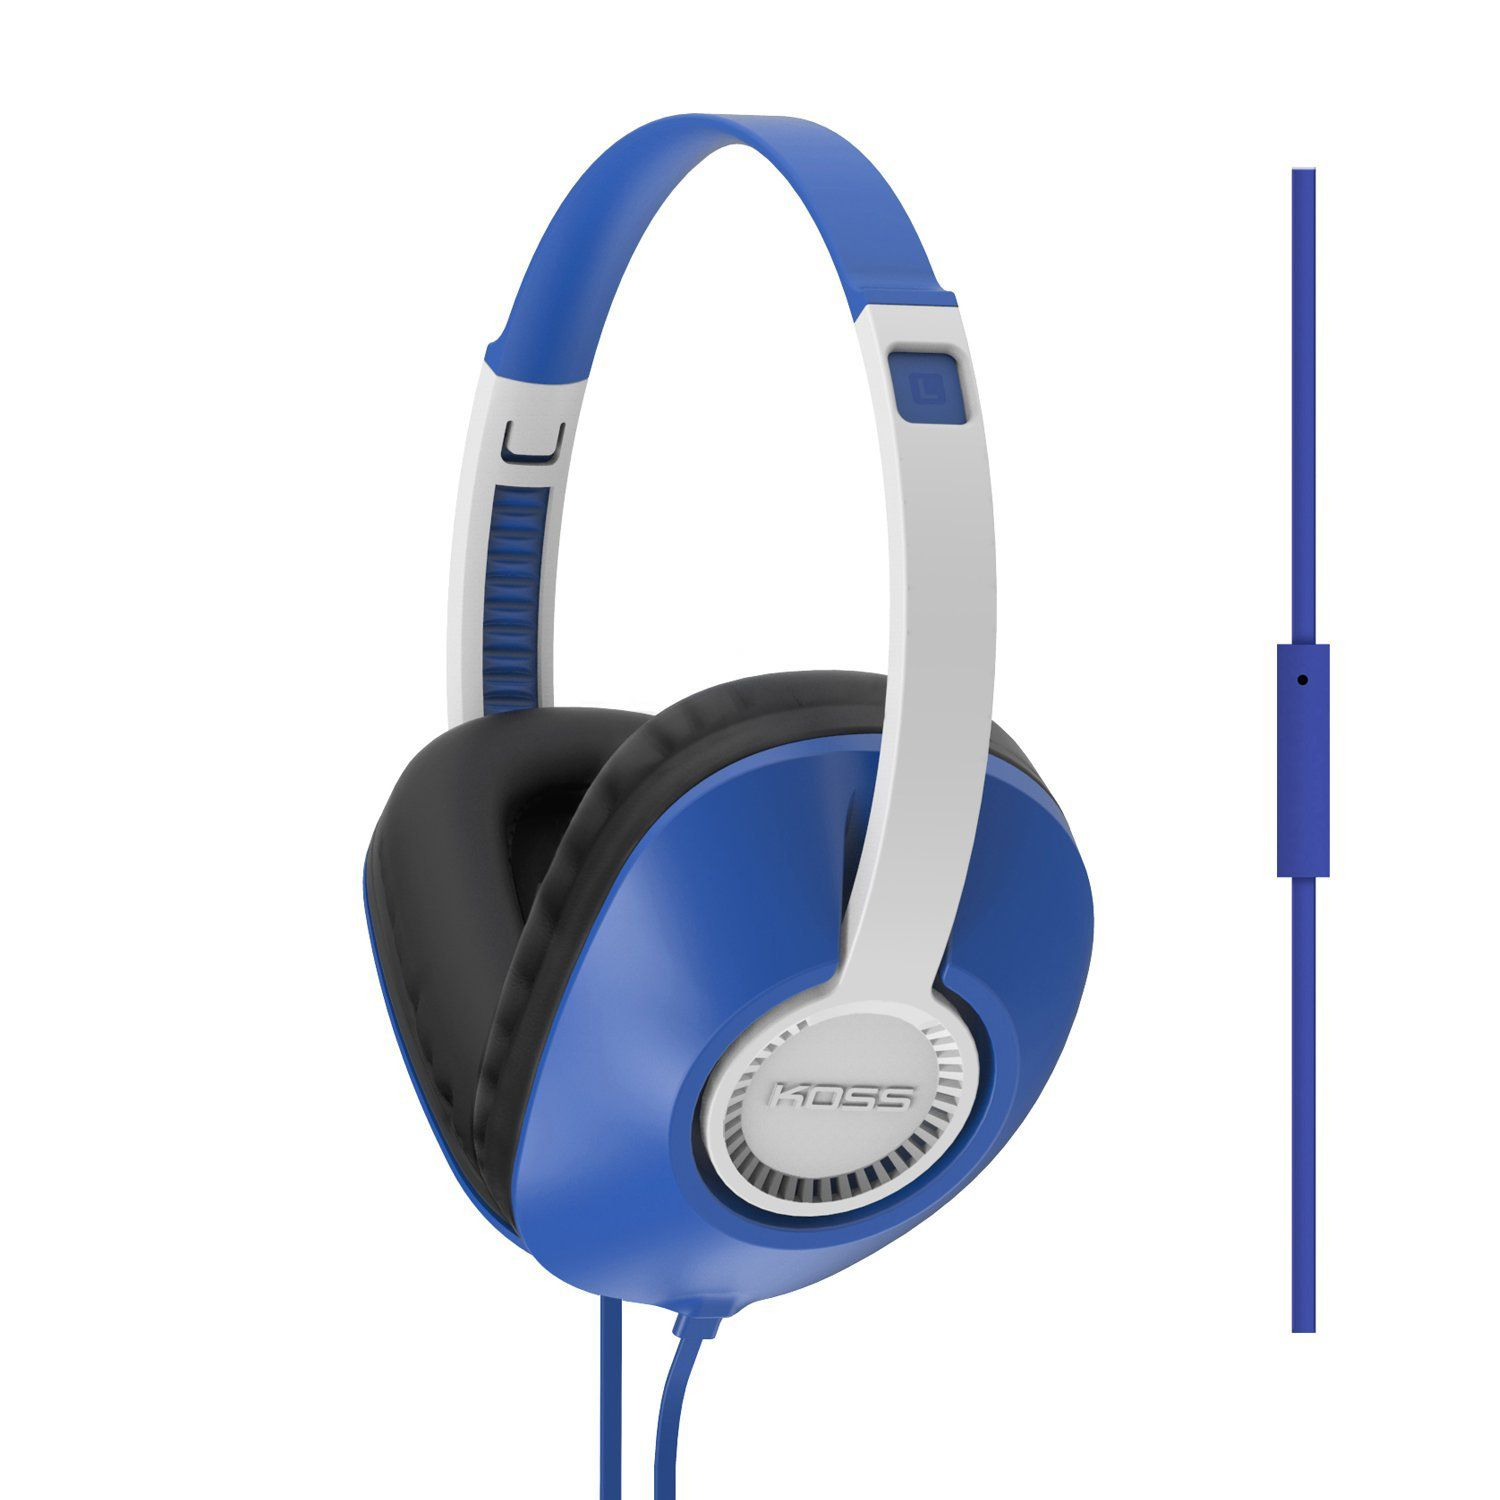 2015 Holiday Gift Guide: The 5 Best Headphones to Buy ...